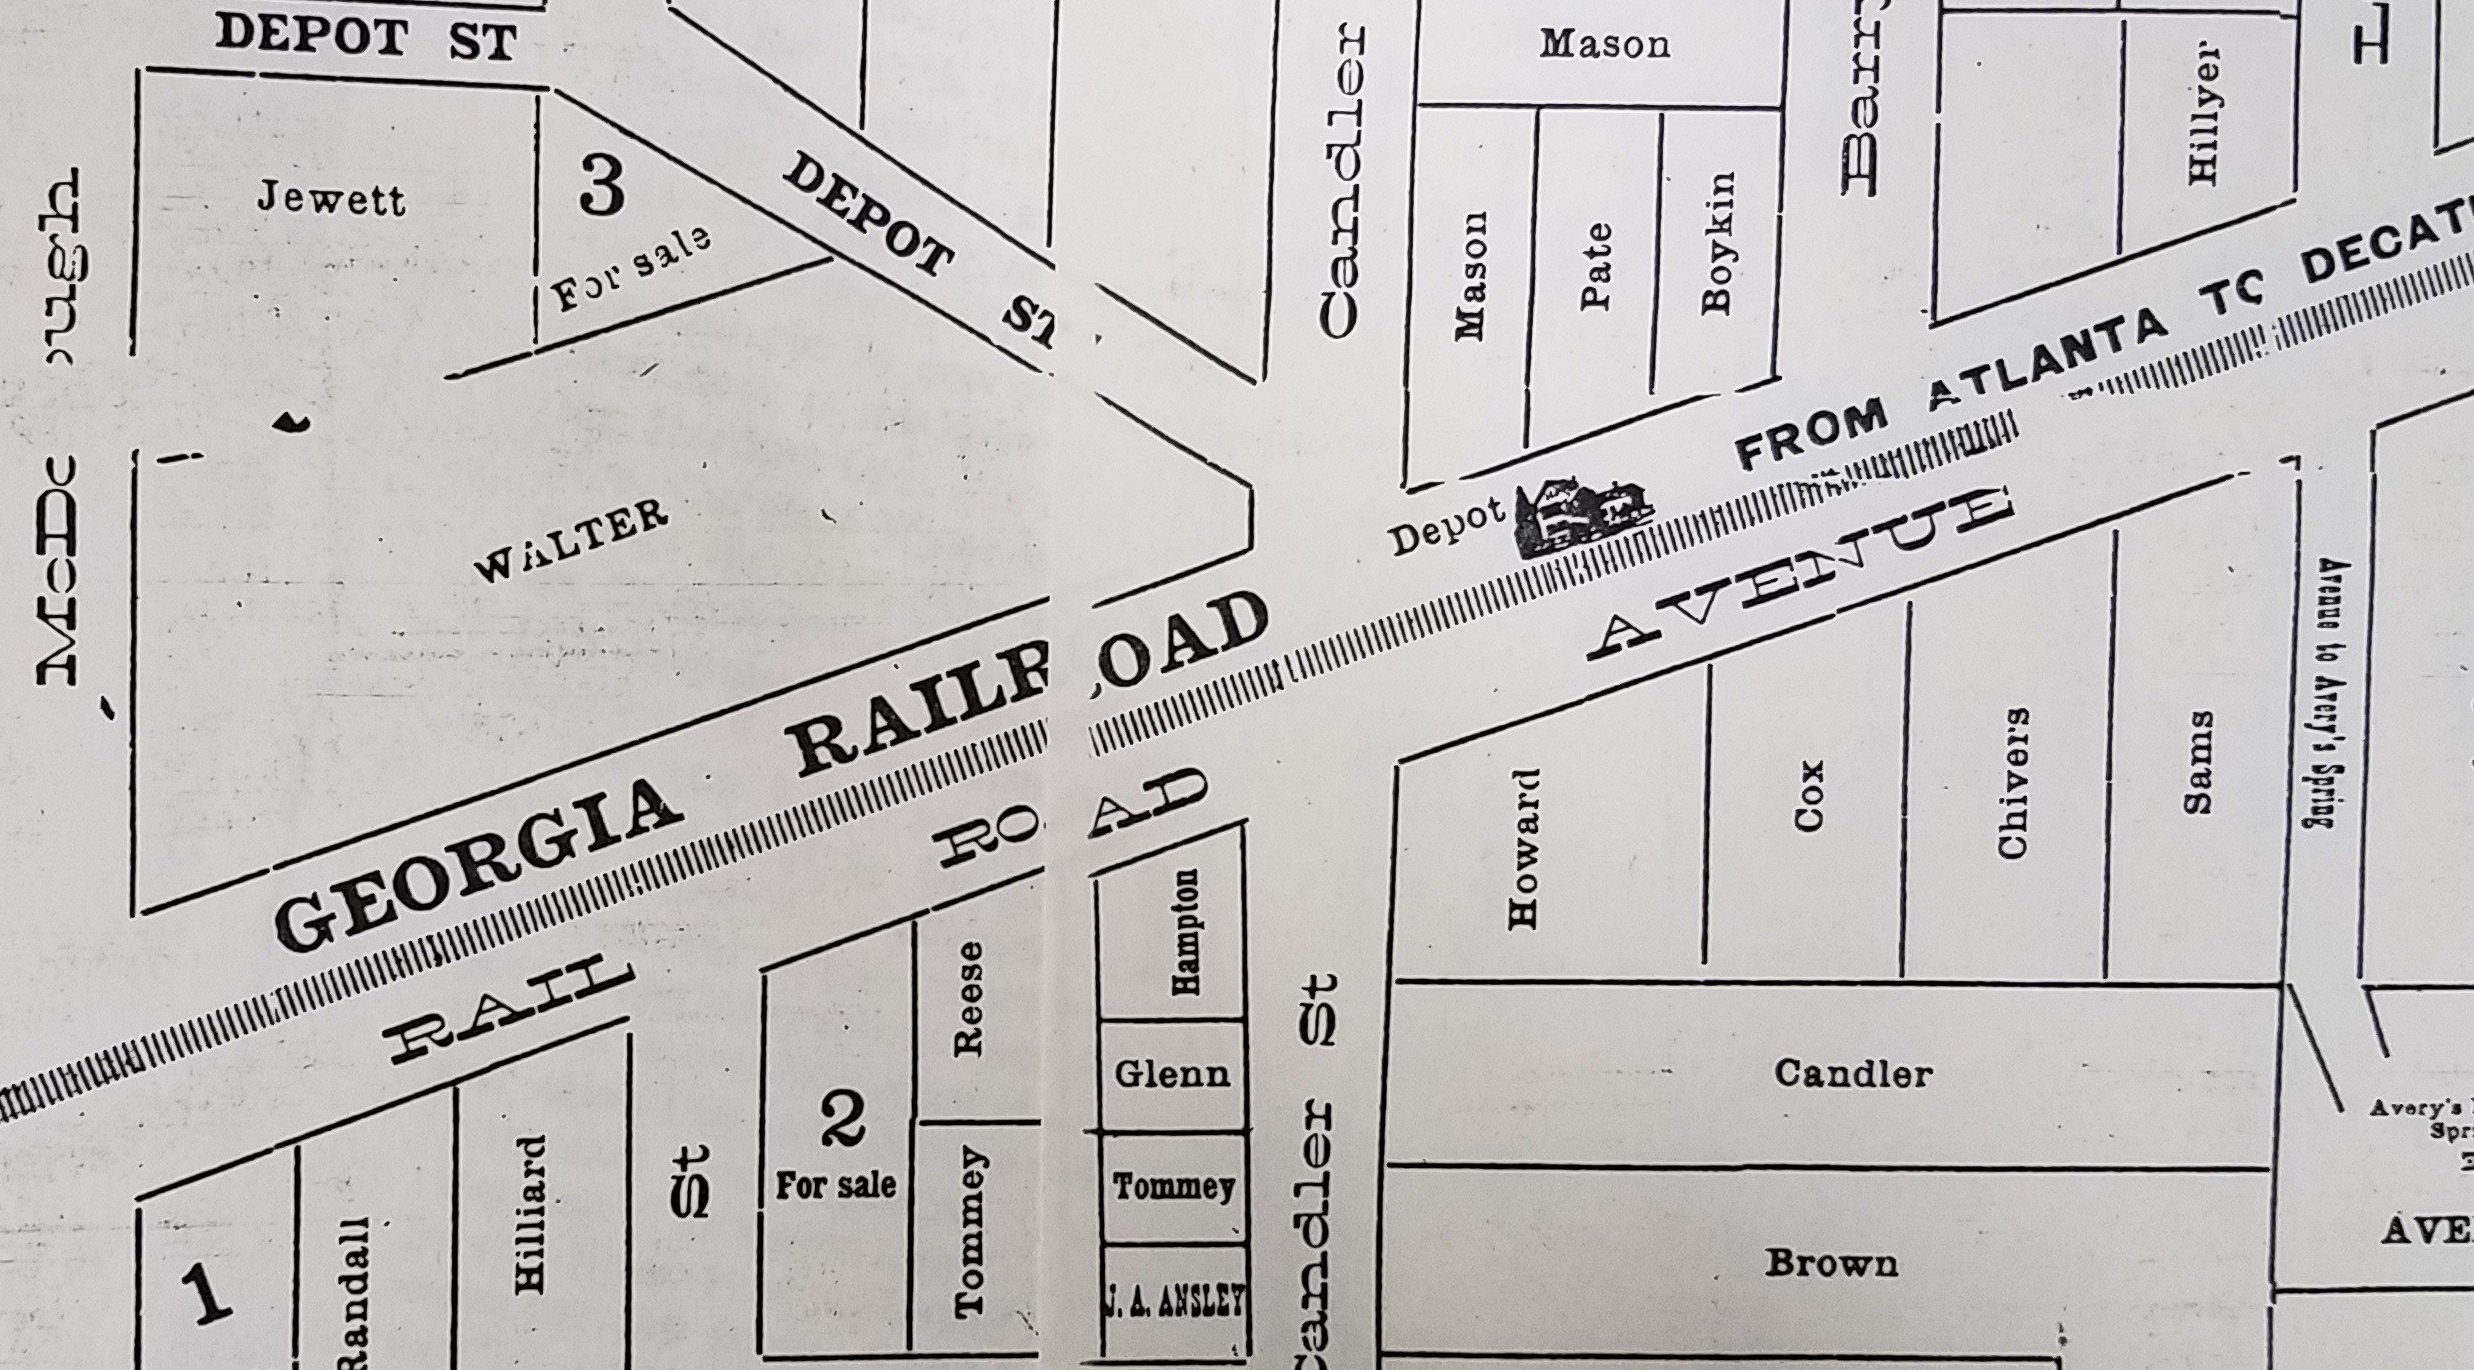 old decatur map RR